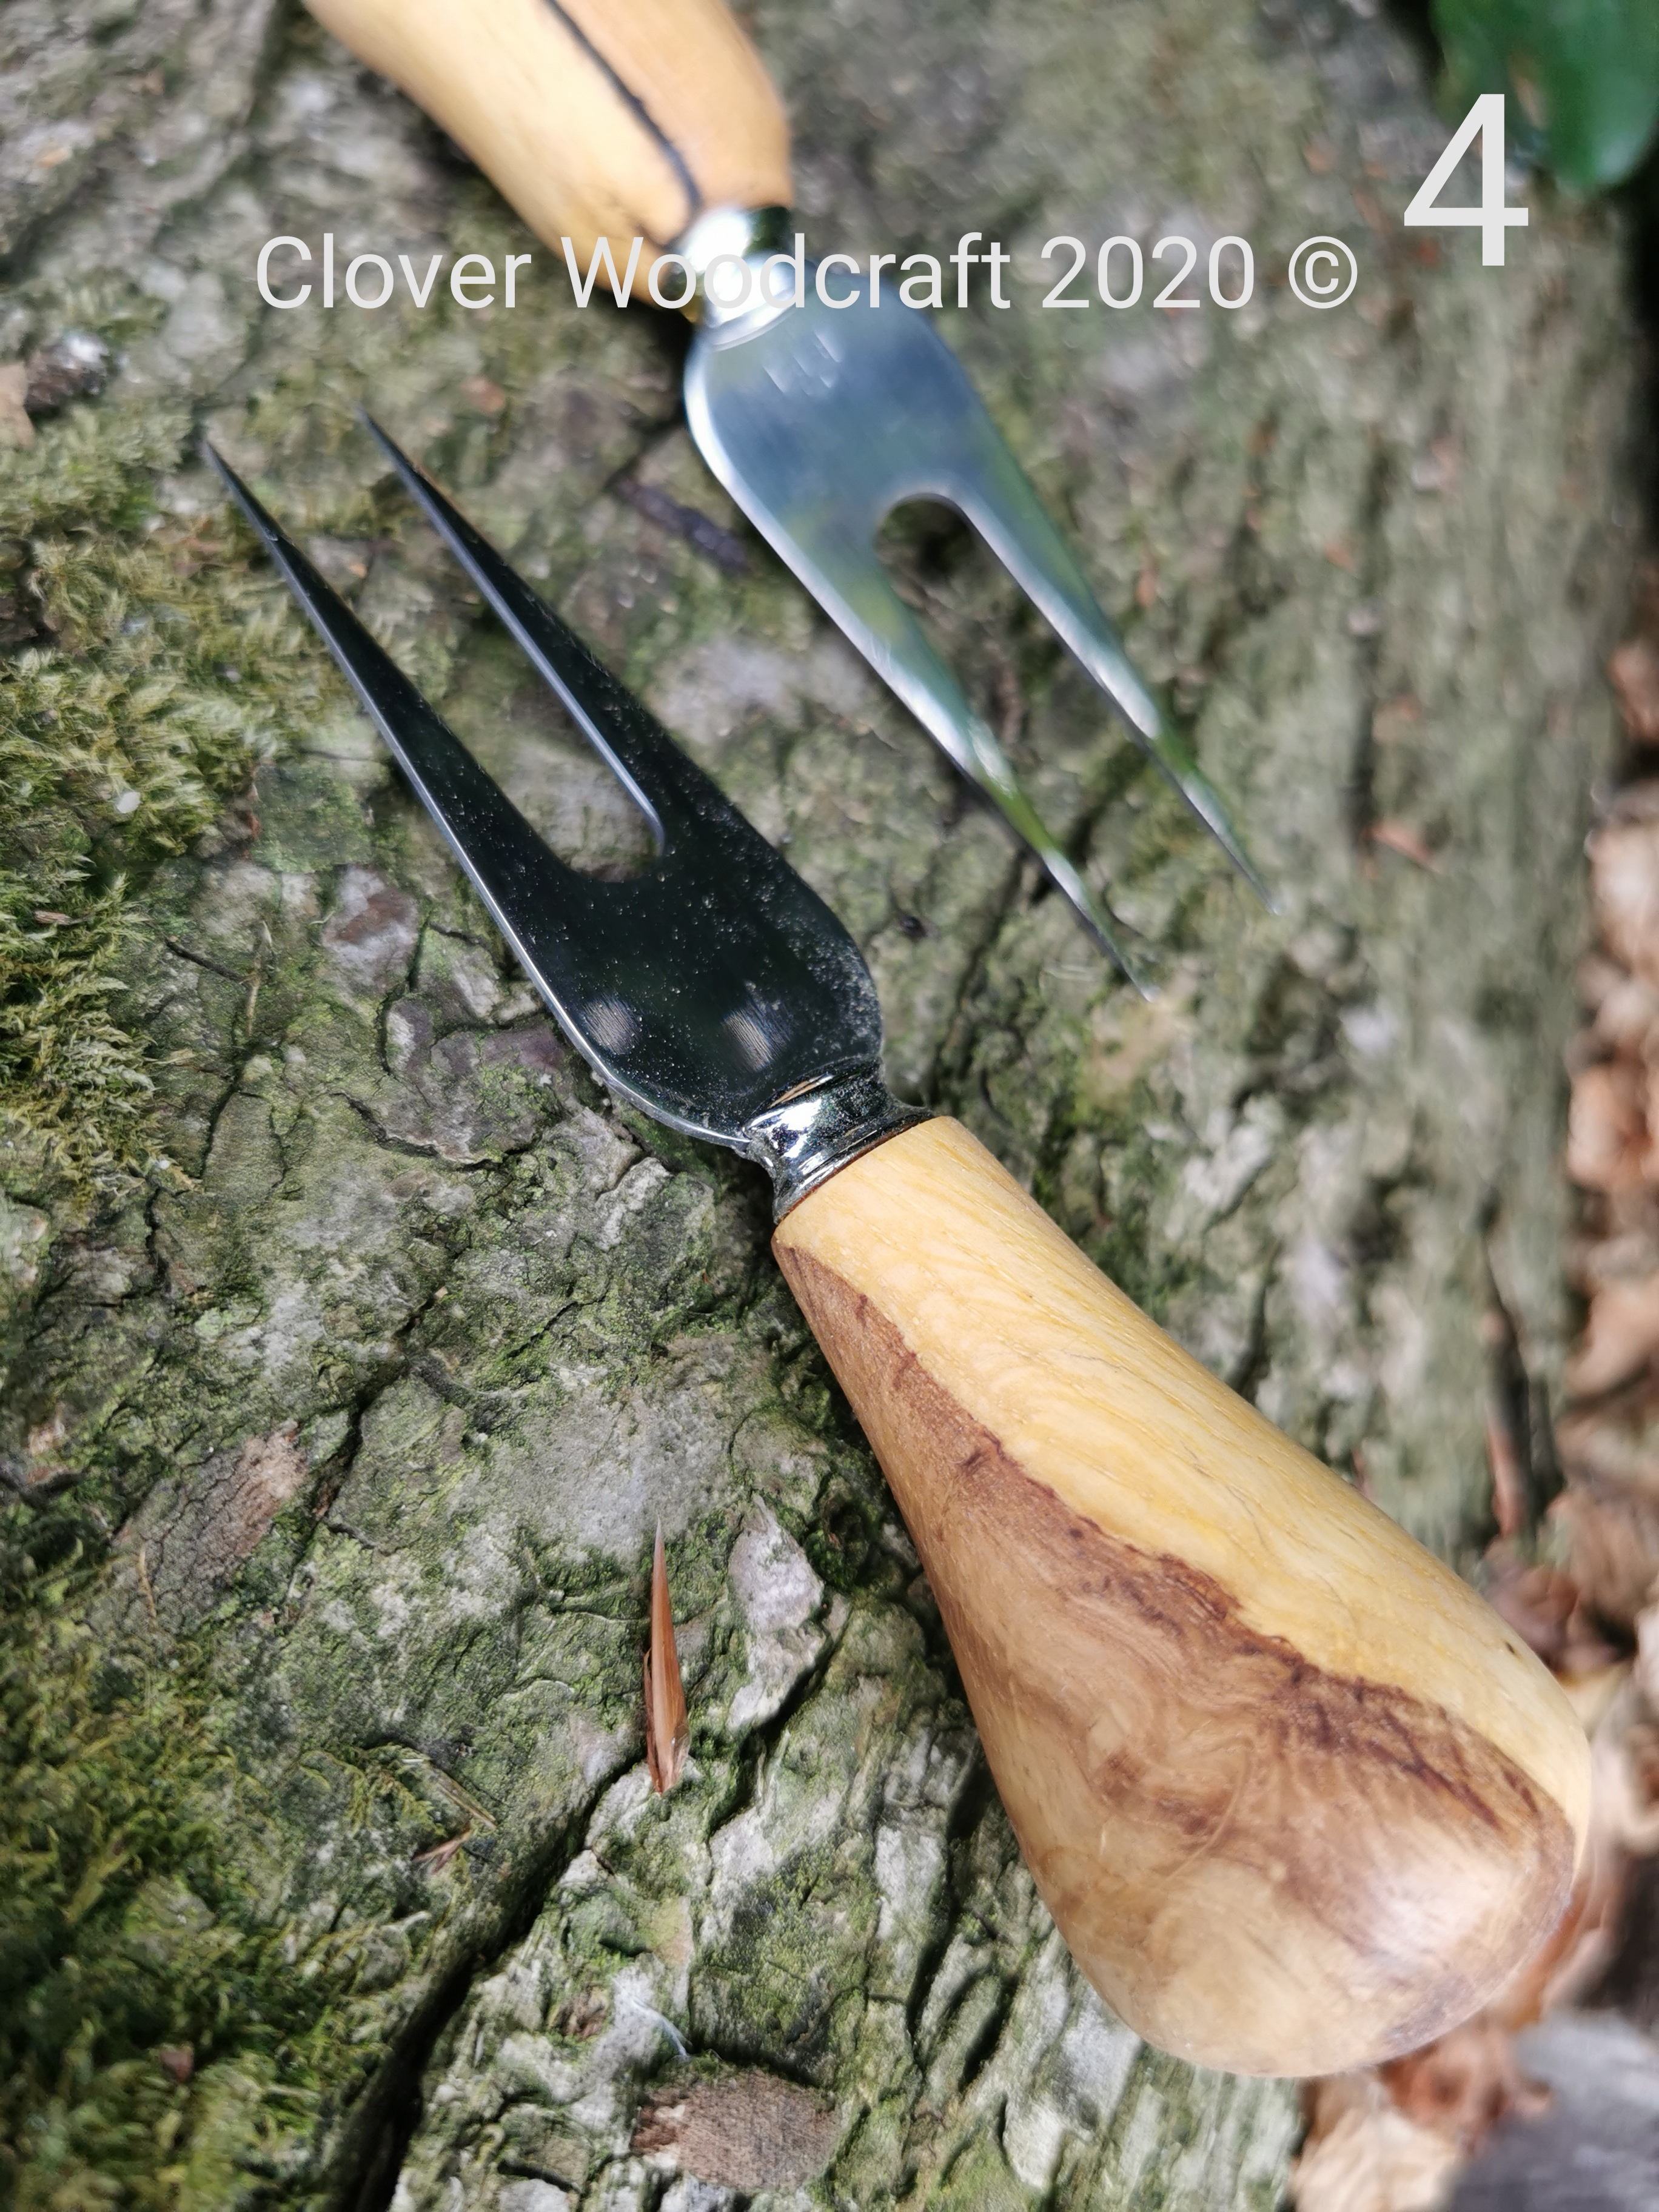 Handmade Wood turned Cheese Knife and Accessories